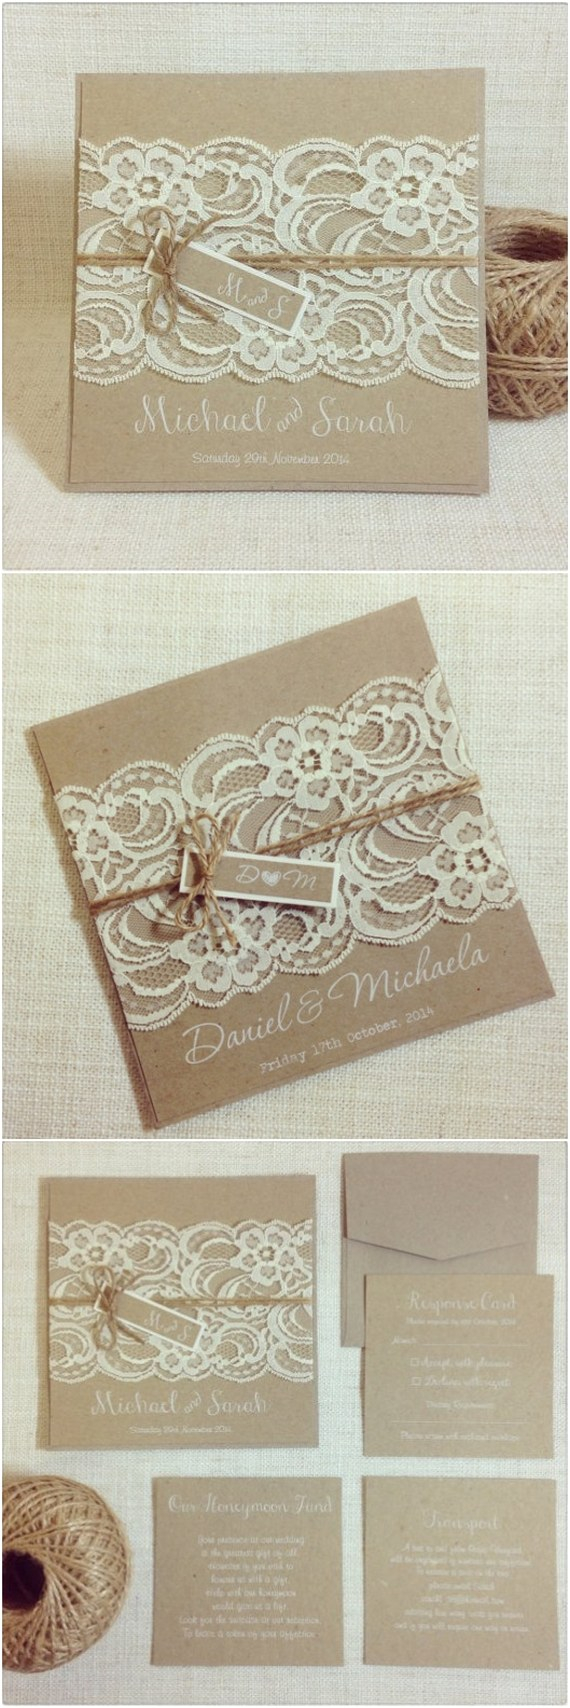 Rustic Lace Wedding Invitations 15 Rustic Wedding Invitations From Etsy Deer Pearl Flowers